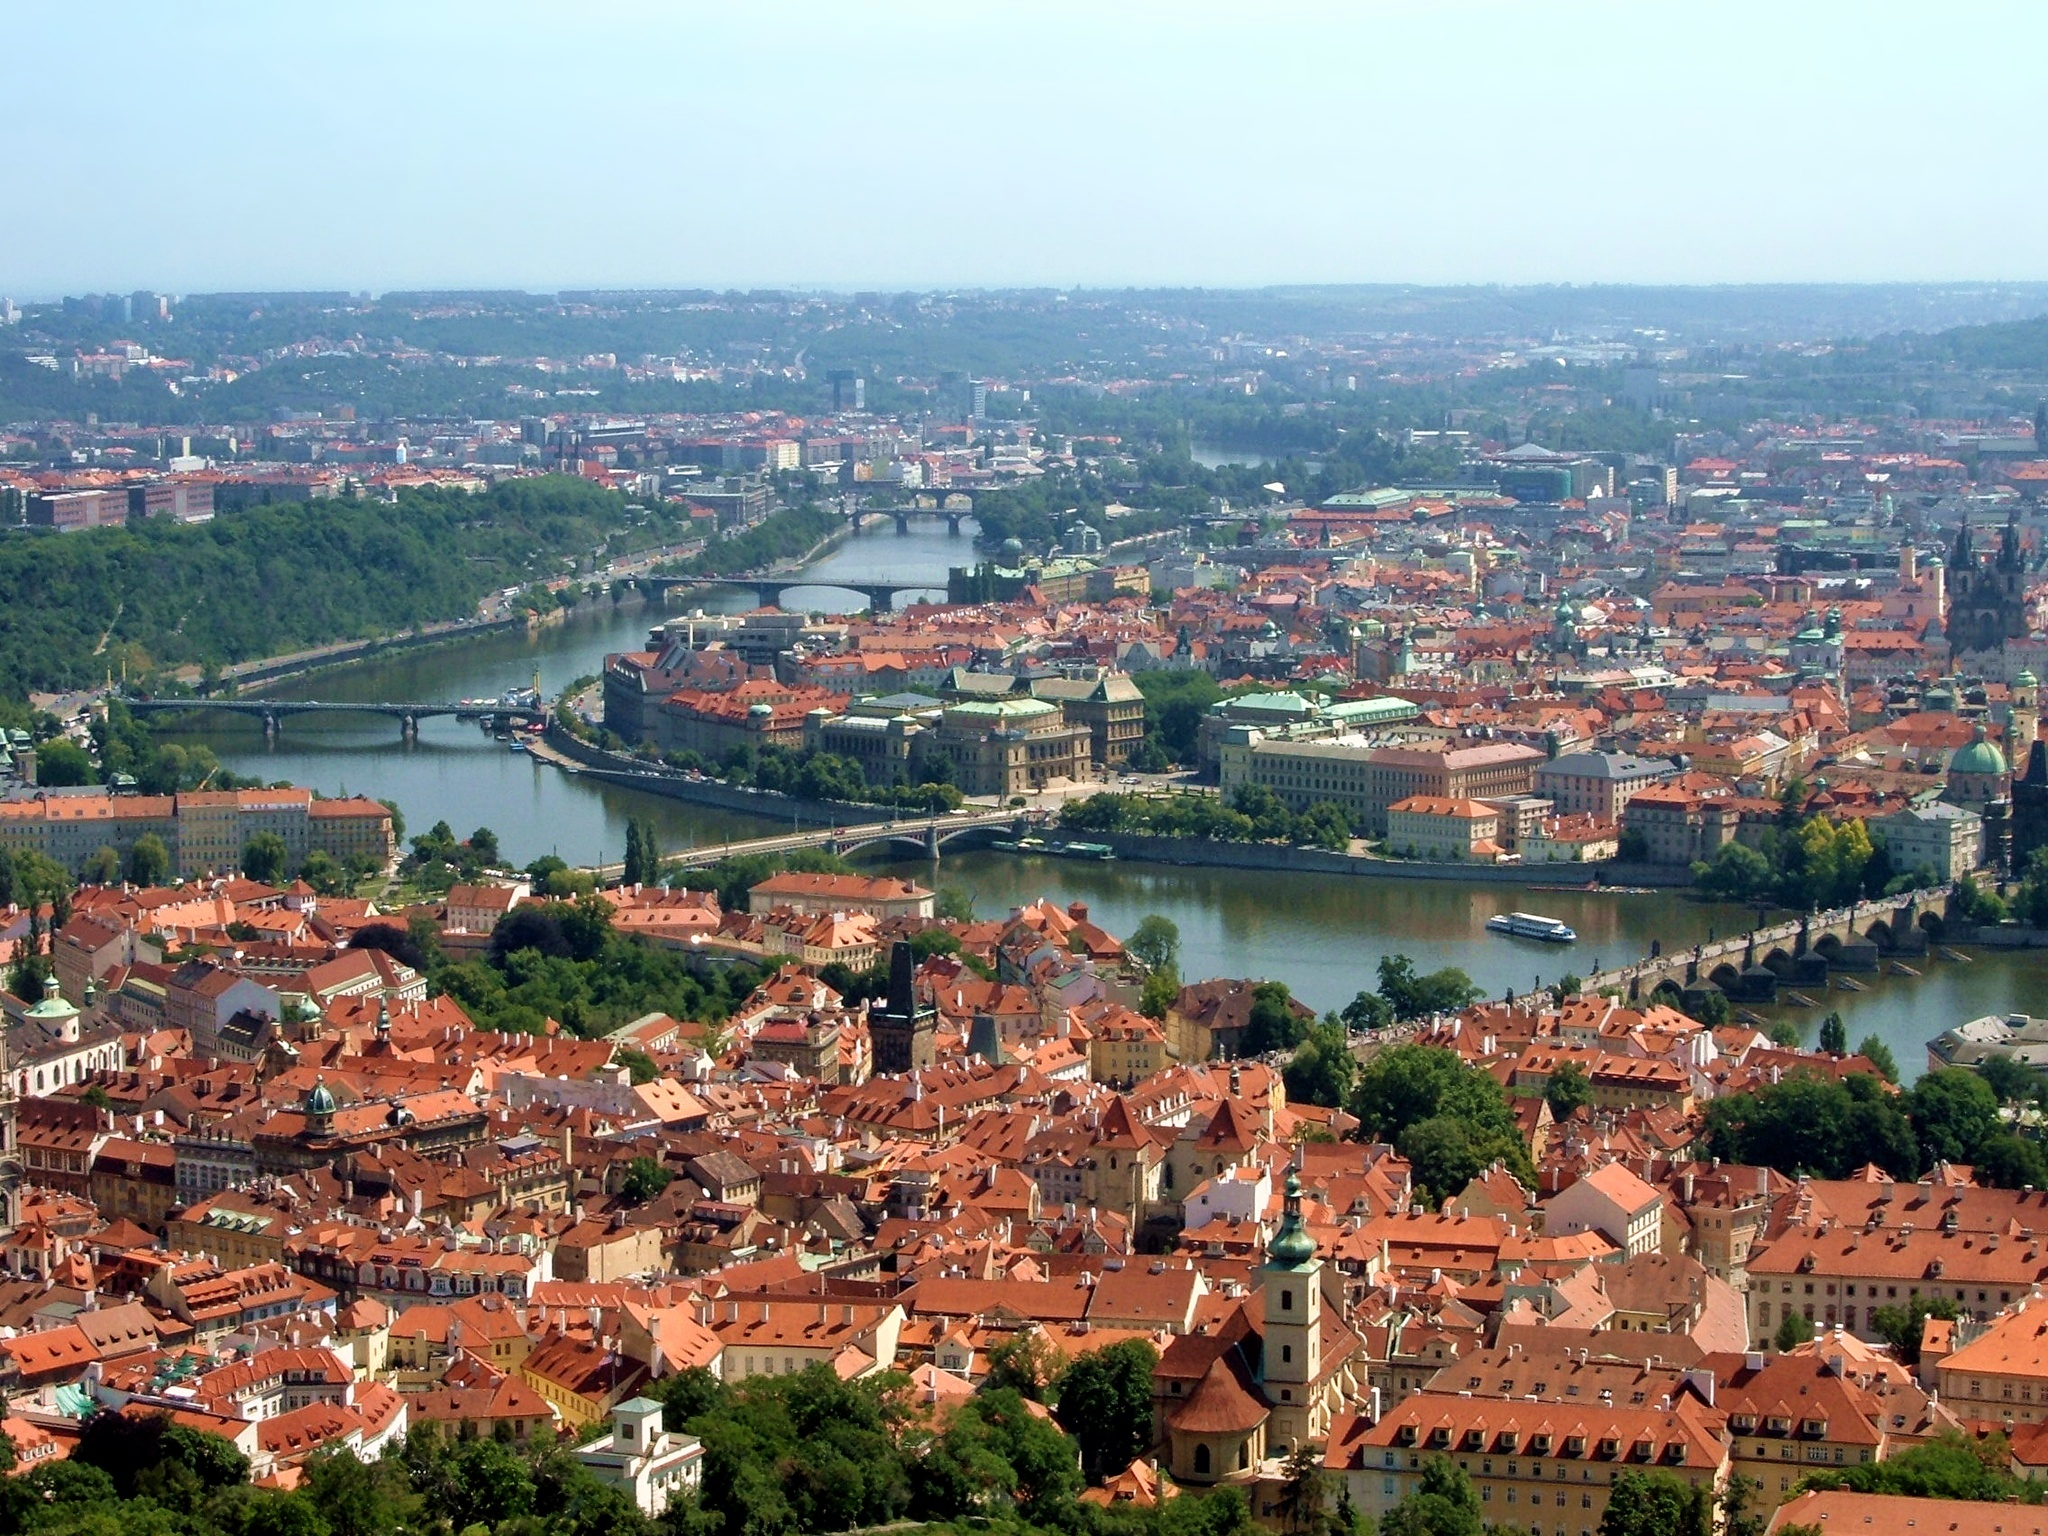 The Vltava's bend in Prague